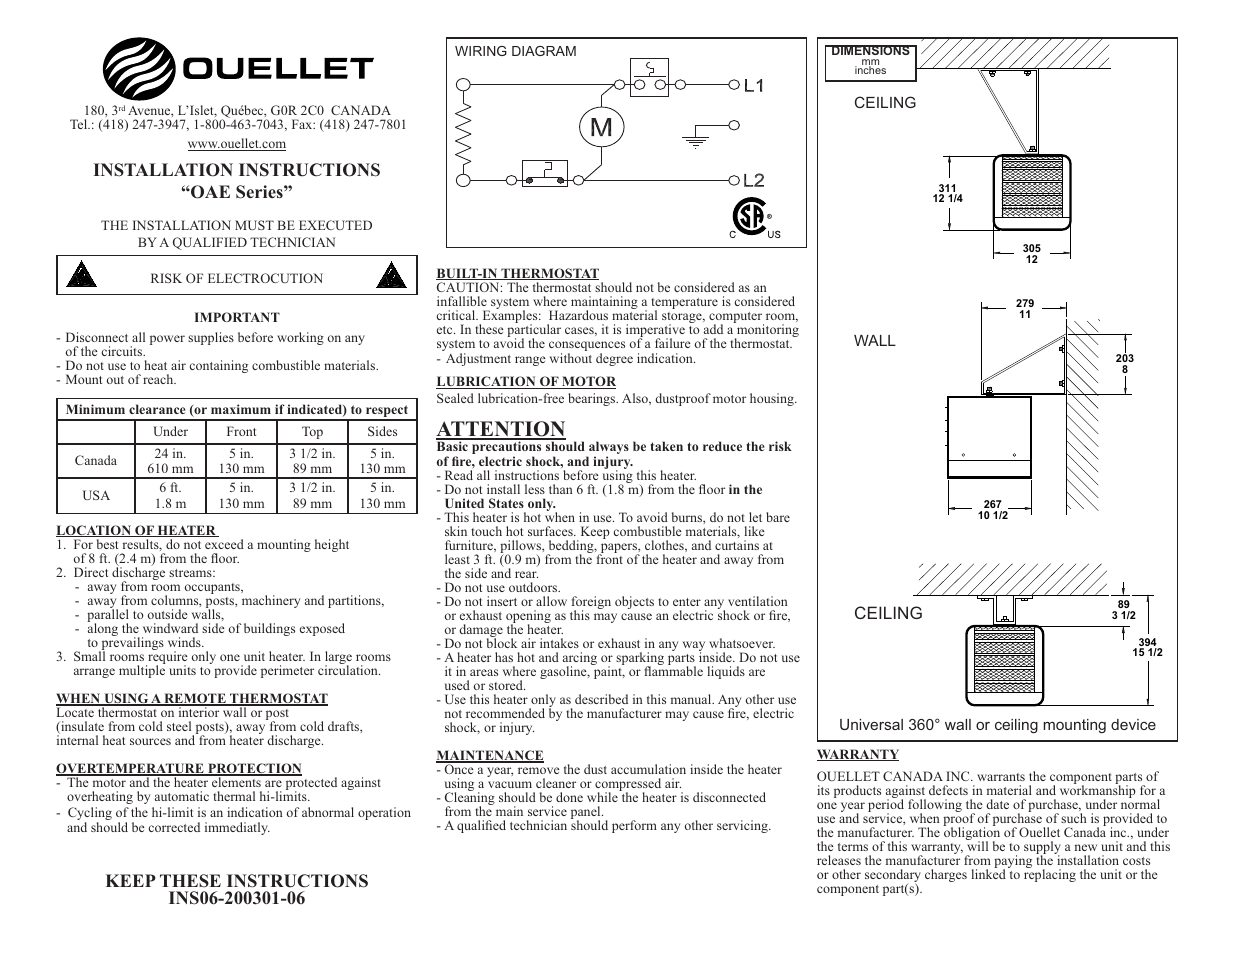 ouellet oae user manual